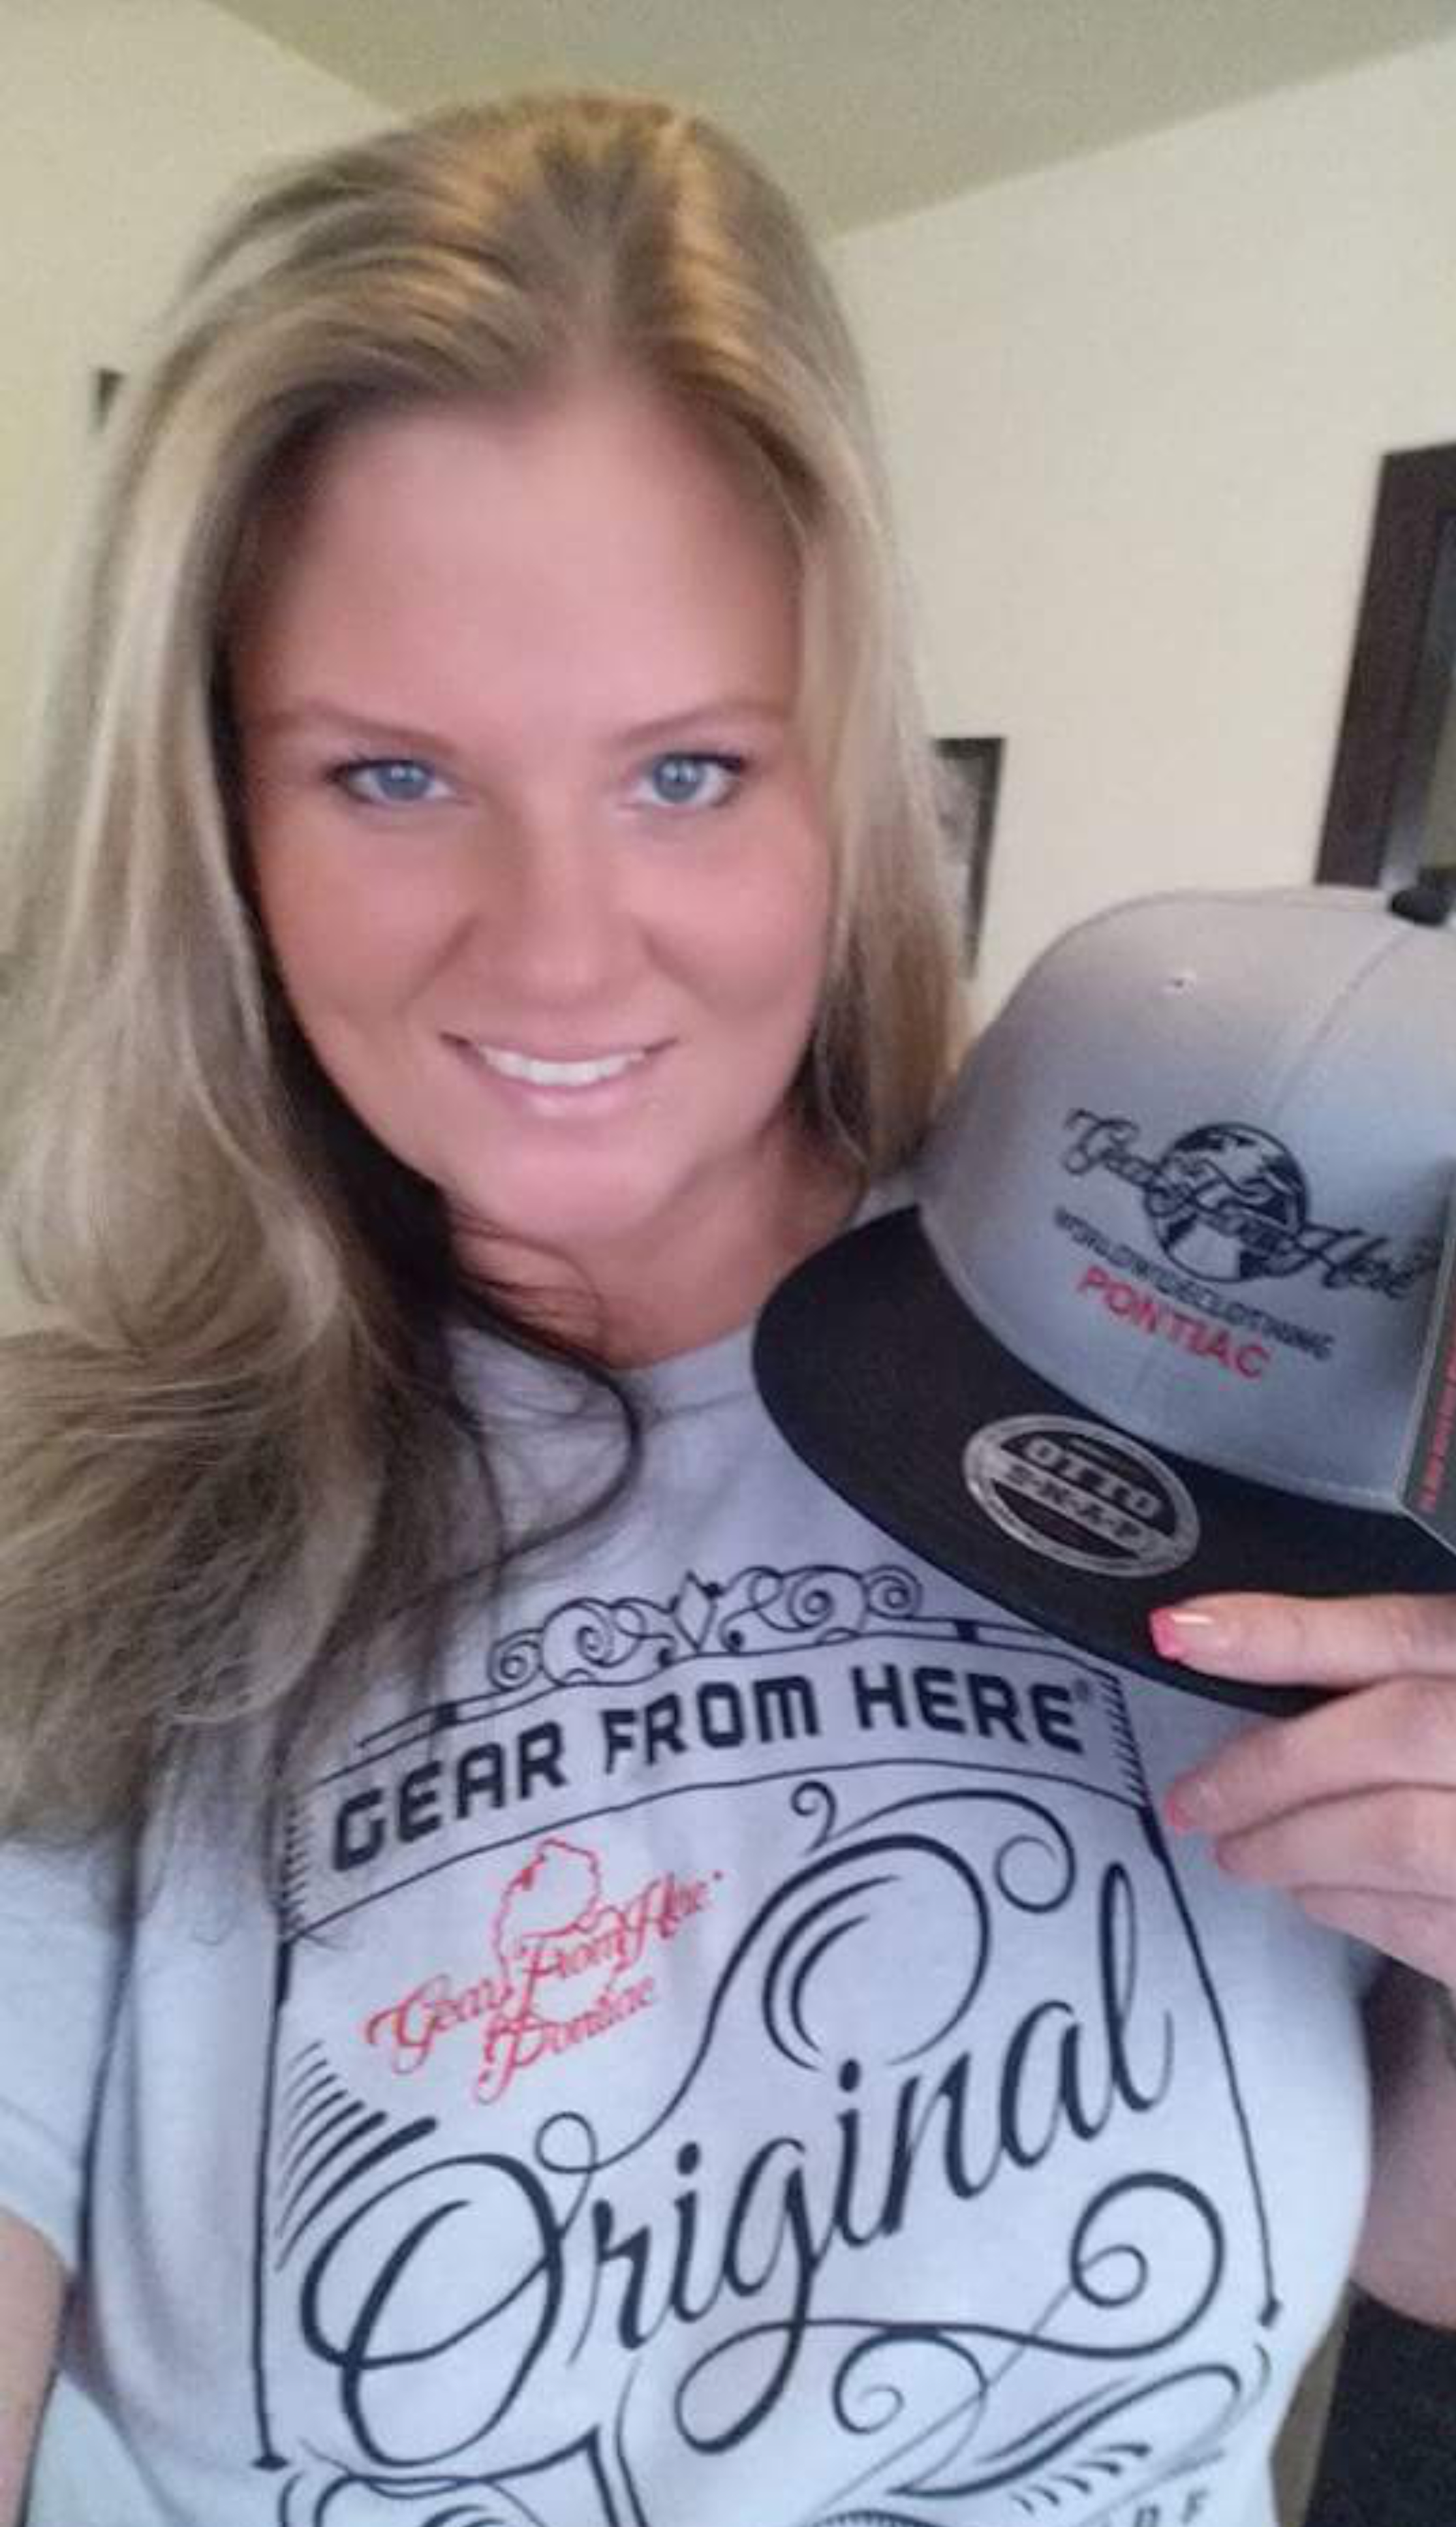 Woman wearing gray Original t-shirt and holding Pontiac hat